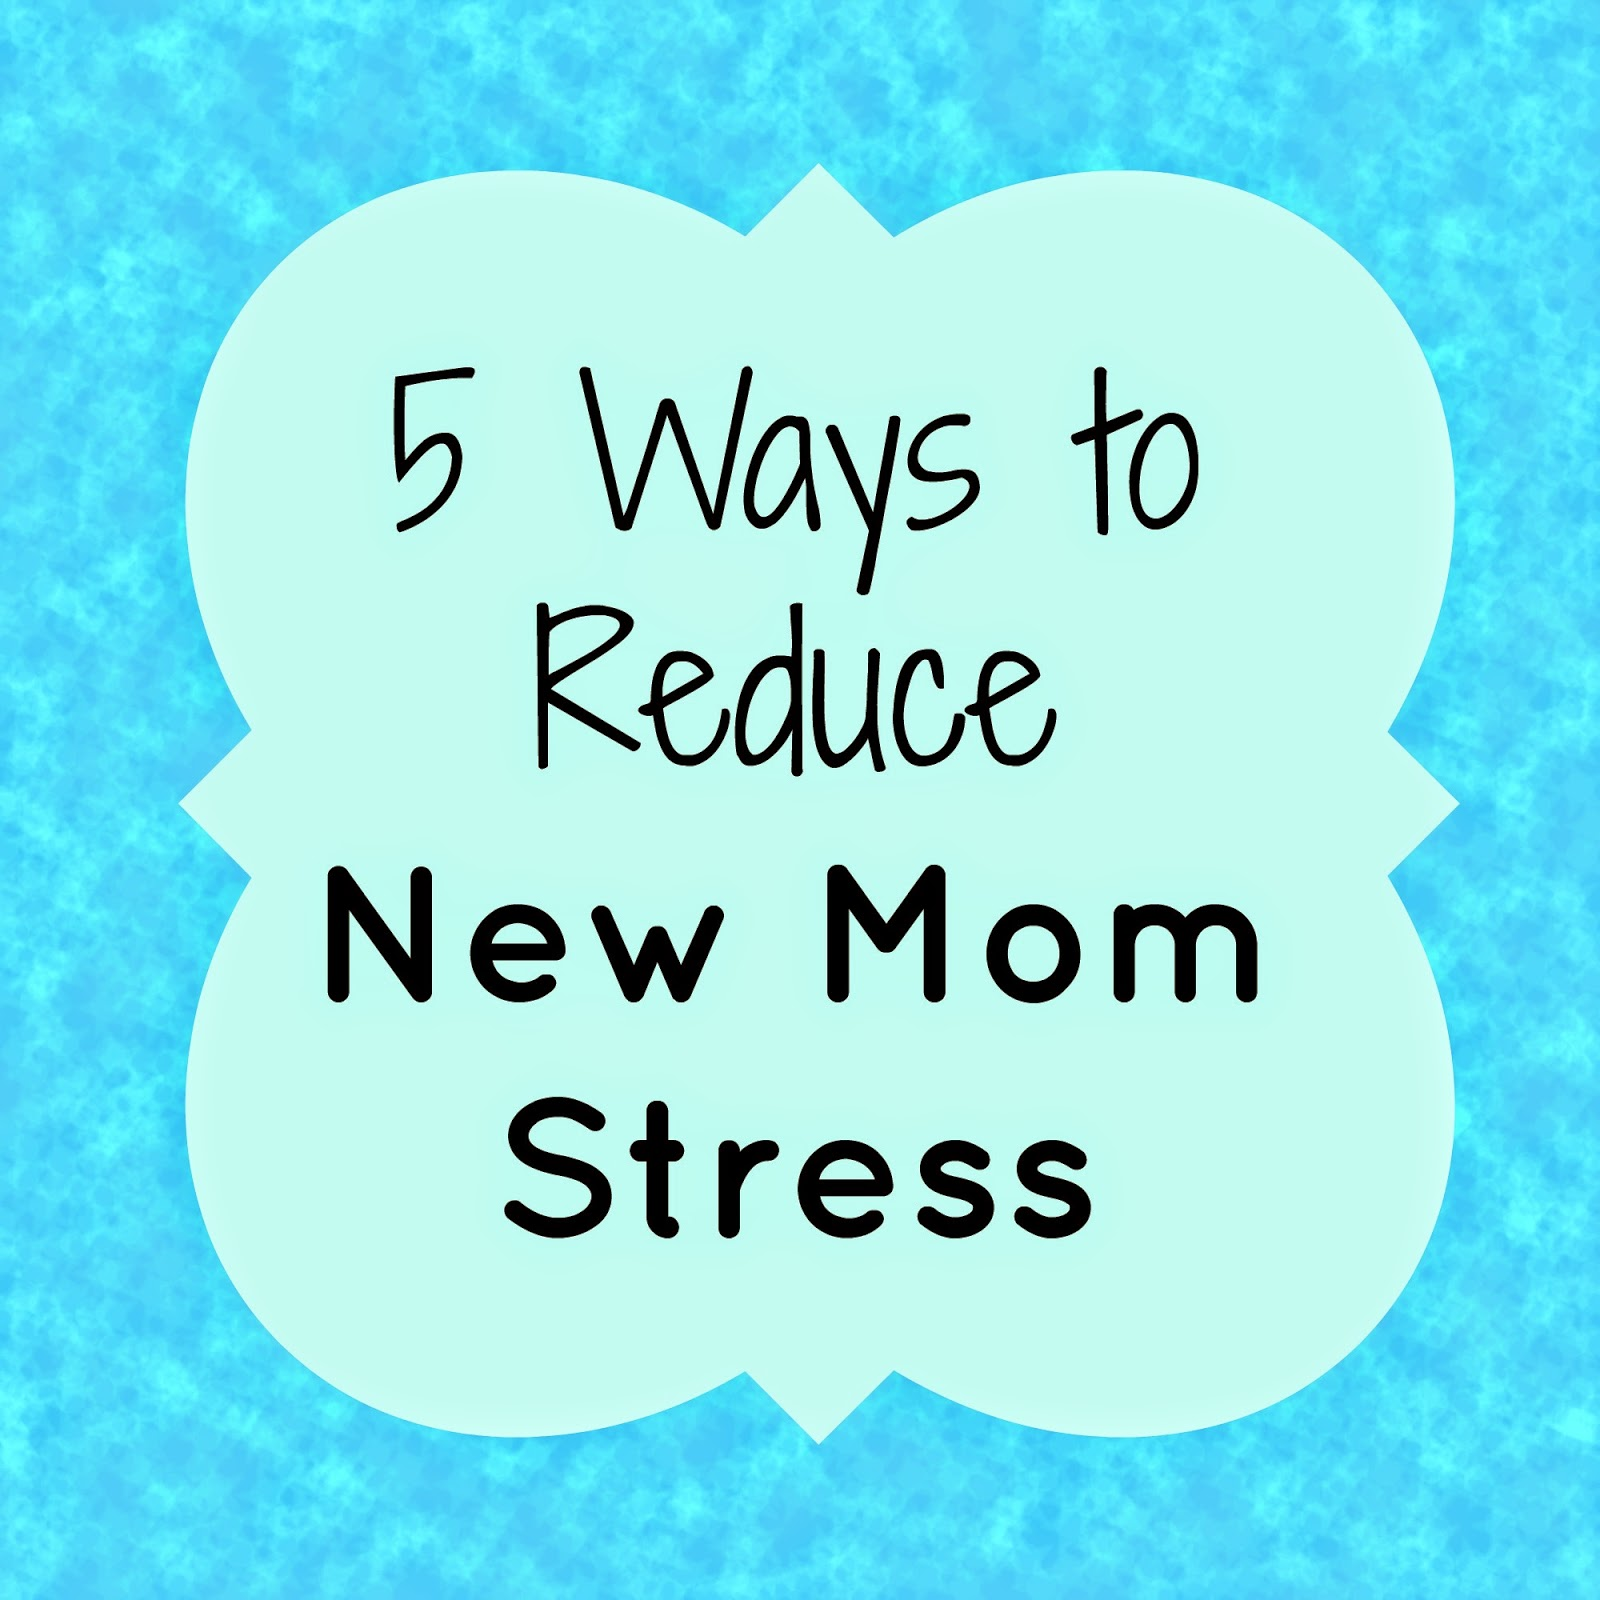 5 Ways to Reduce New Mom Stress